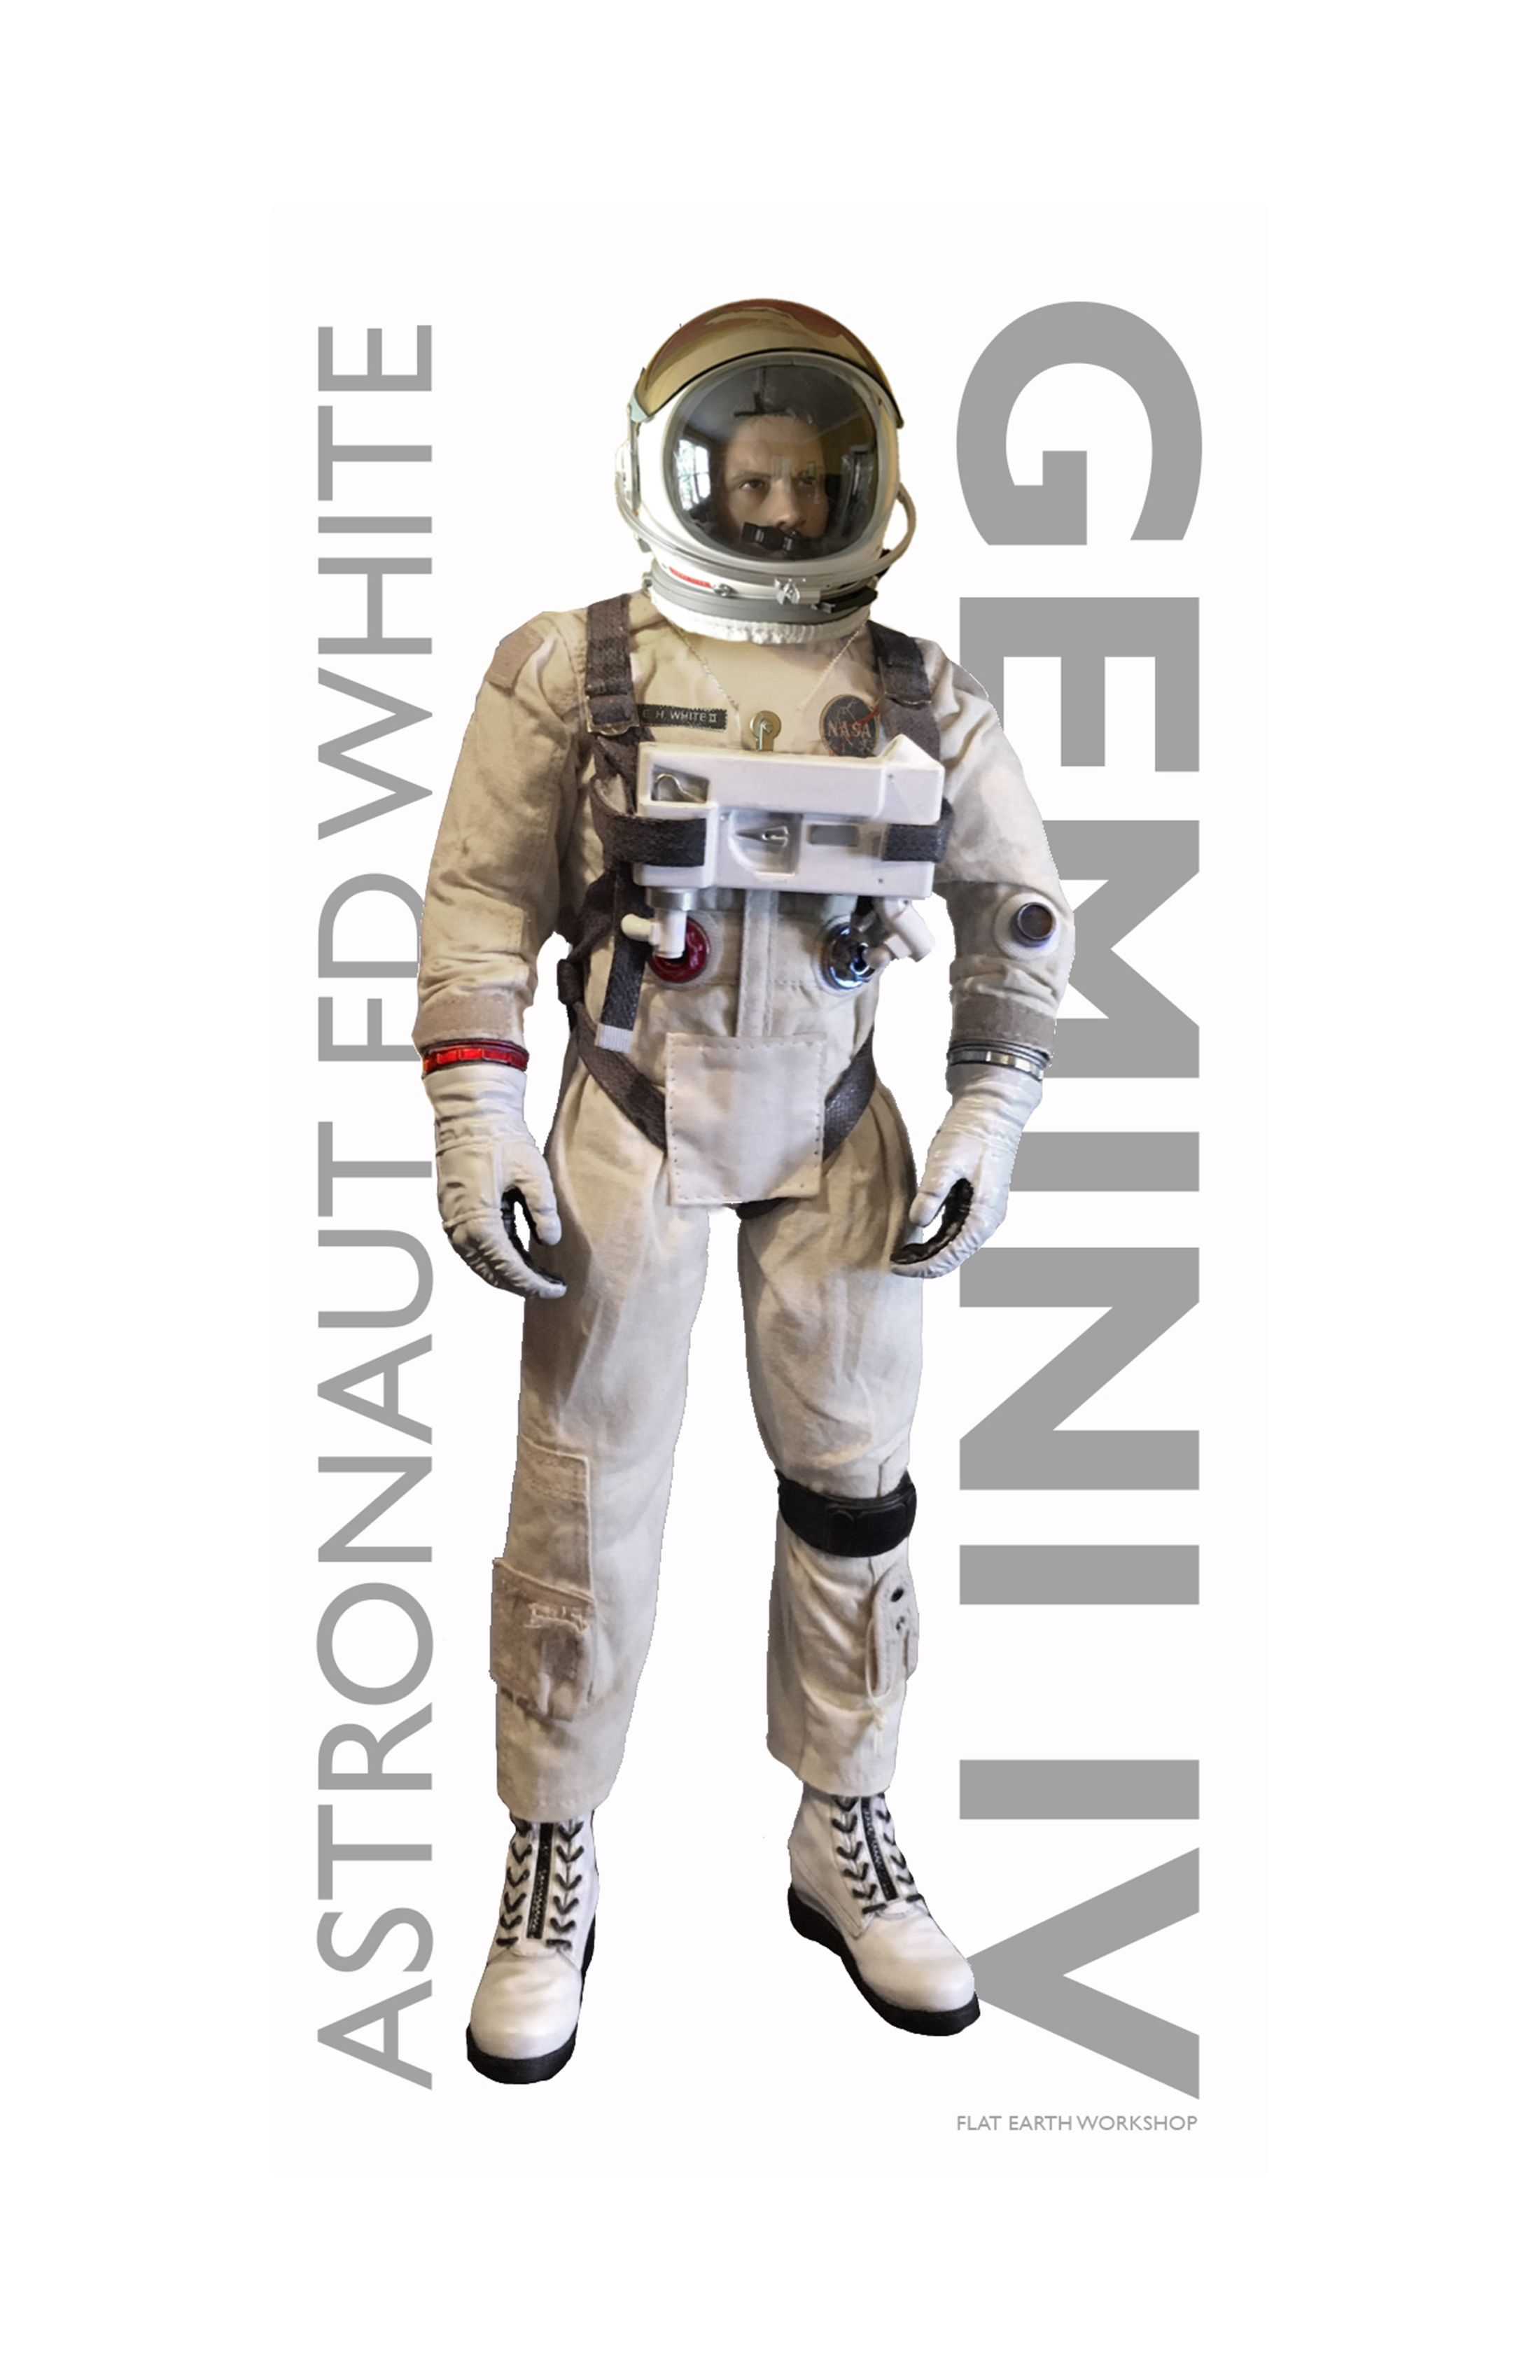 small resolution of ed white 1 6 figure from gemini iv eva mission created by flat earth workshop now in the collection of adam savage myth busters tested